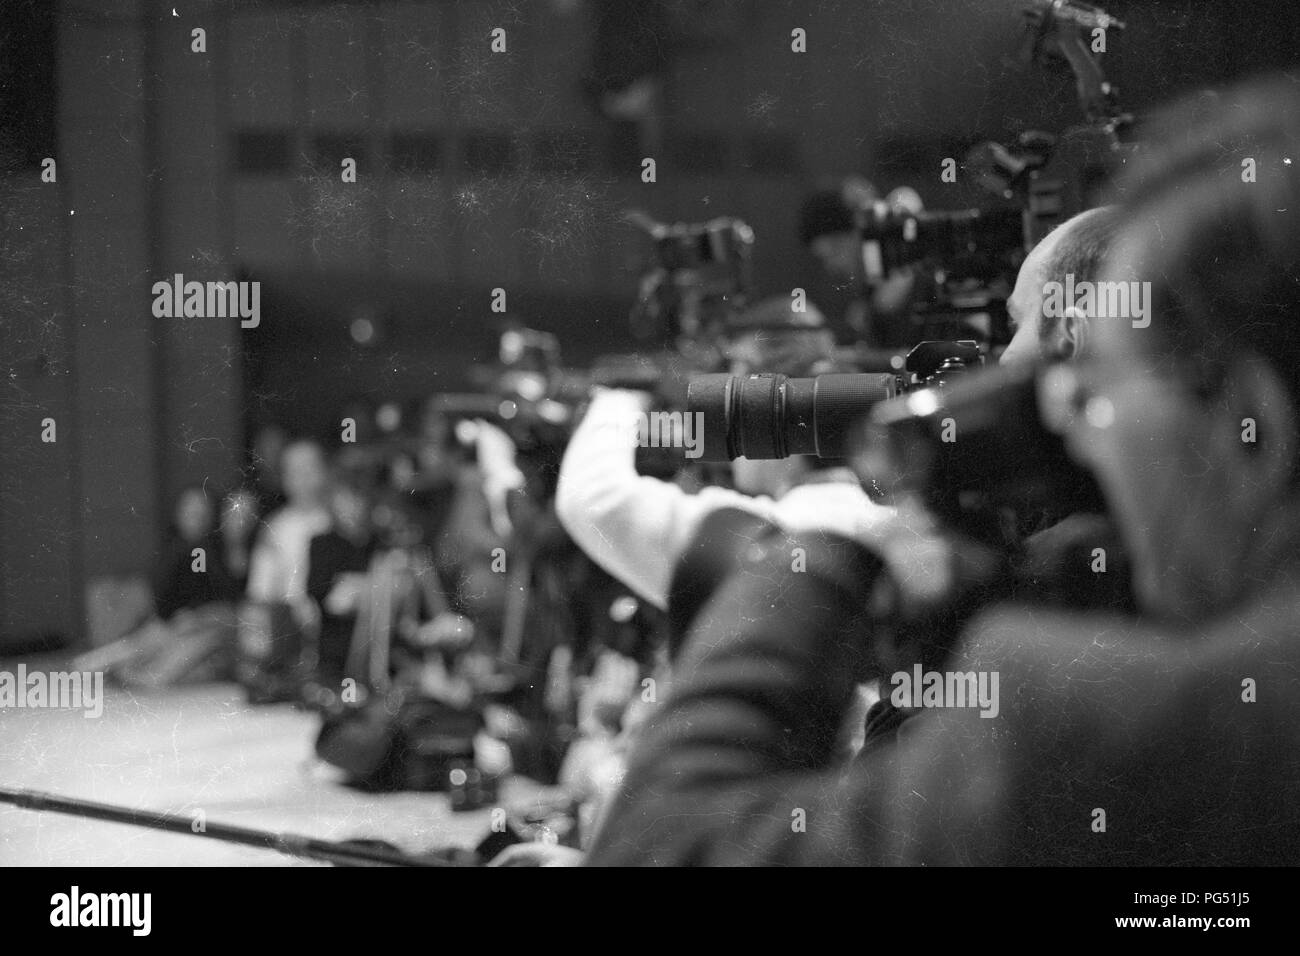 Photographers and film crews during a press conference with Dany Nemcova (co-signatory of Charter 77), Jiri Dienstbier (later Czech Foreign Minister) and Vaclav Maly (later Auxiliary Bishop of Prague). Stock Photo